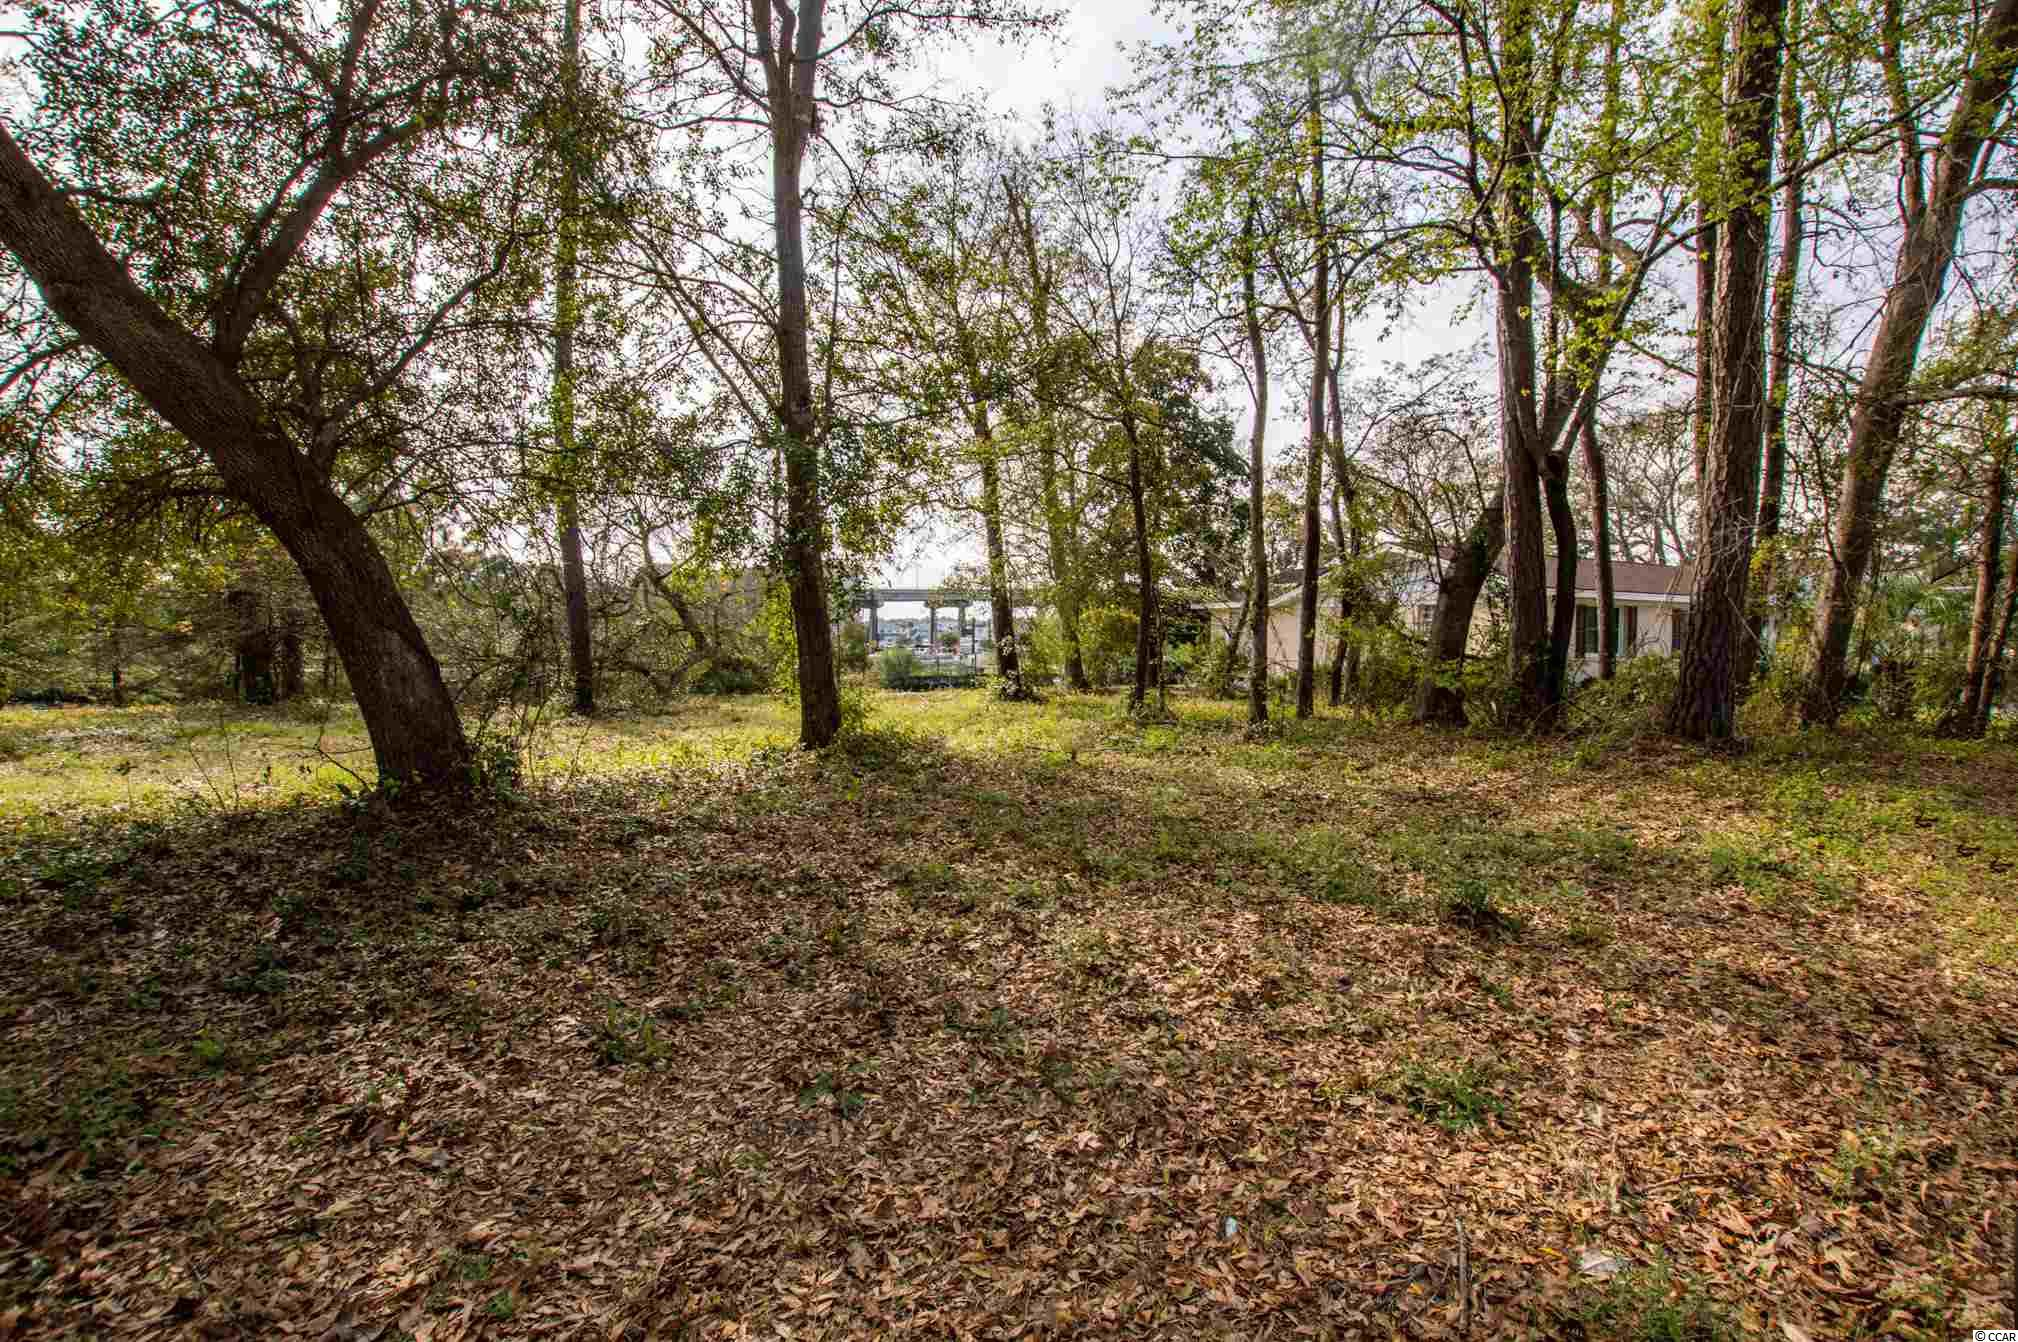 Cherry Grove Lot, East of 17, Waterfront, in Palmetto Shores Neighborhood, Large Lot and deep lot! Has Bulkhead, on Tidal Channel to the intracoastal waterway on hightide.  Not many lots left like this.  NO HOA, Established Neighborhood, - Call for details.